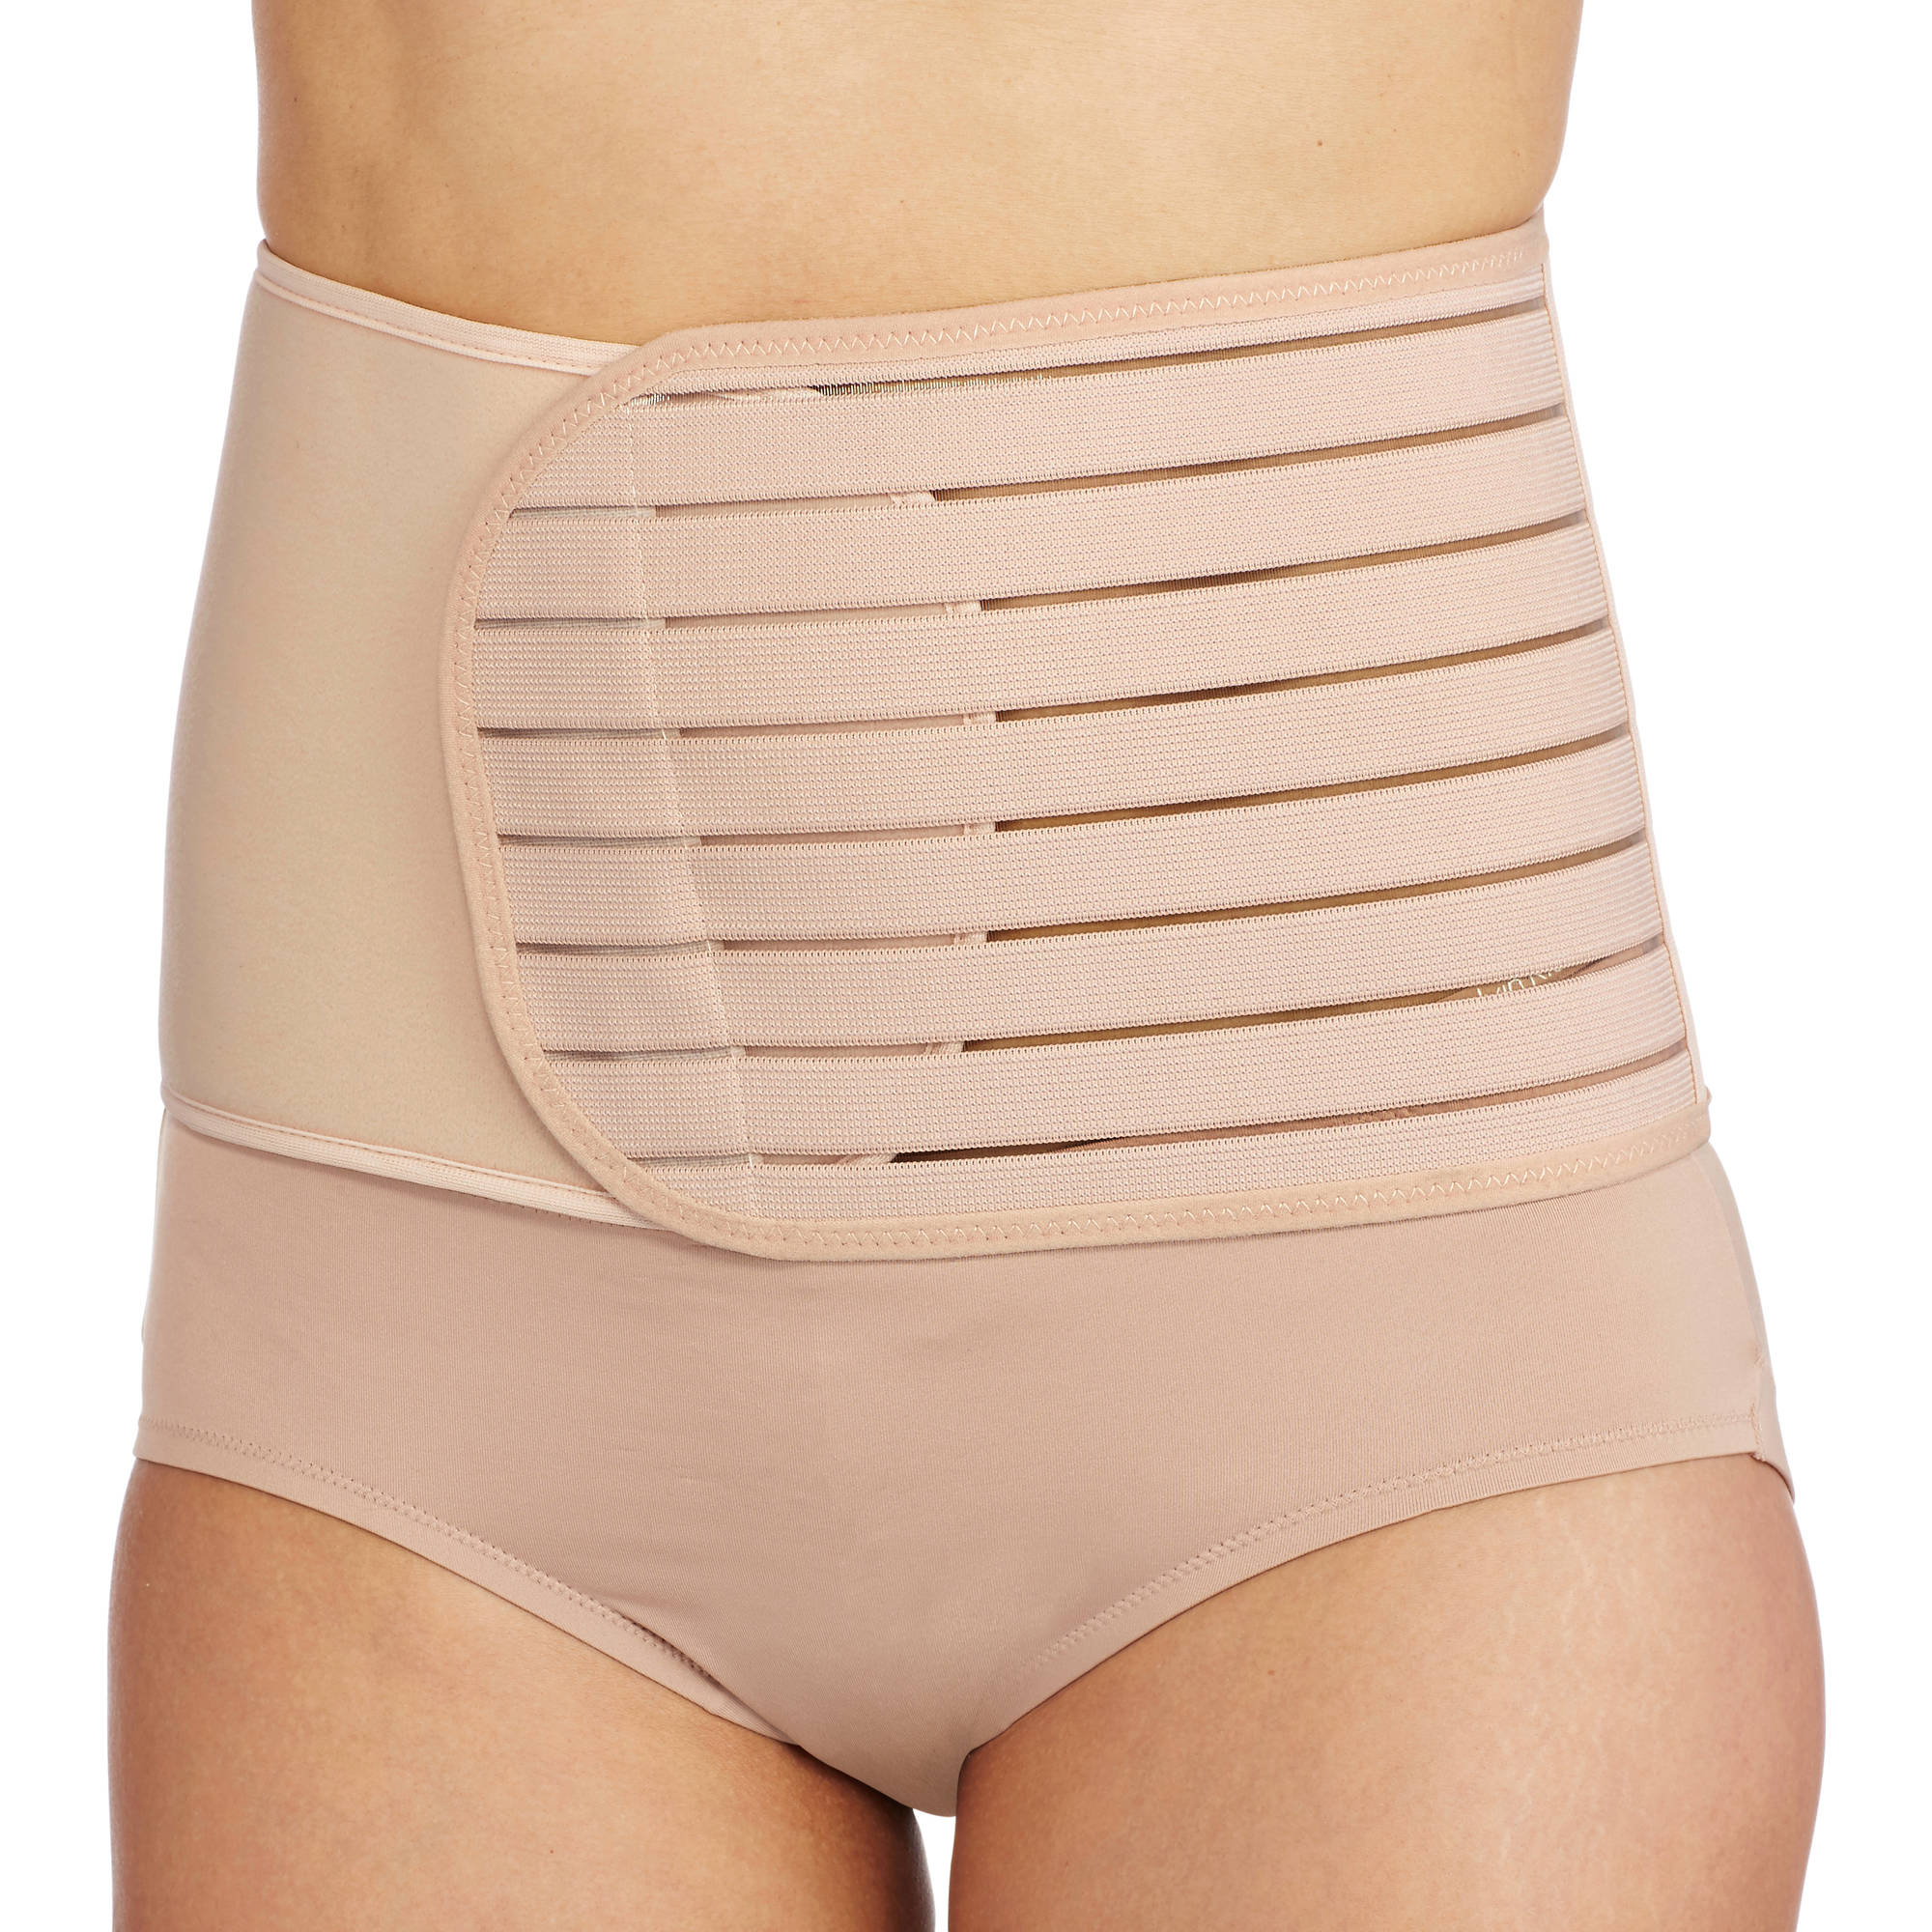 Maternity Postpartum Recovery Elastic Support Belt